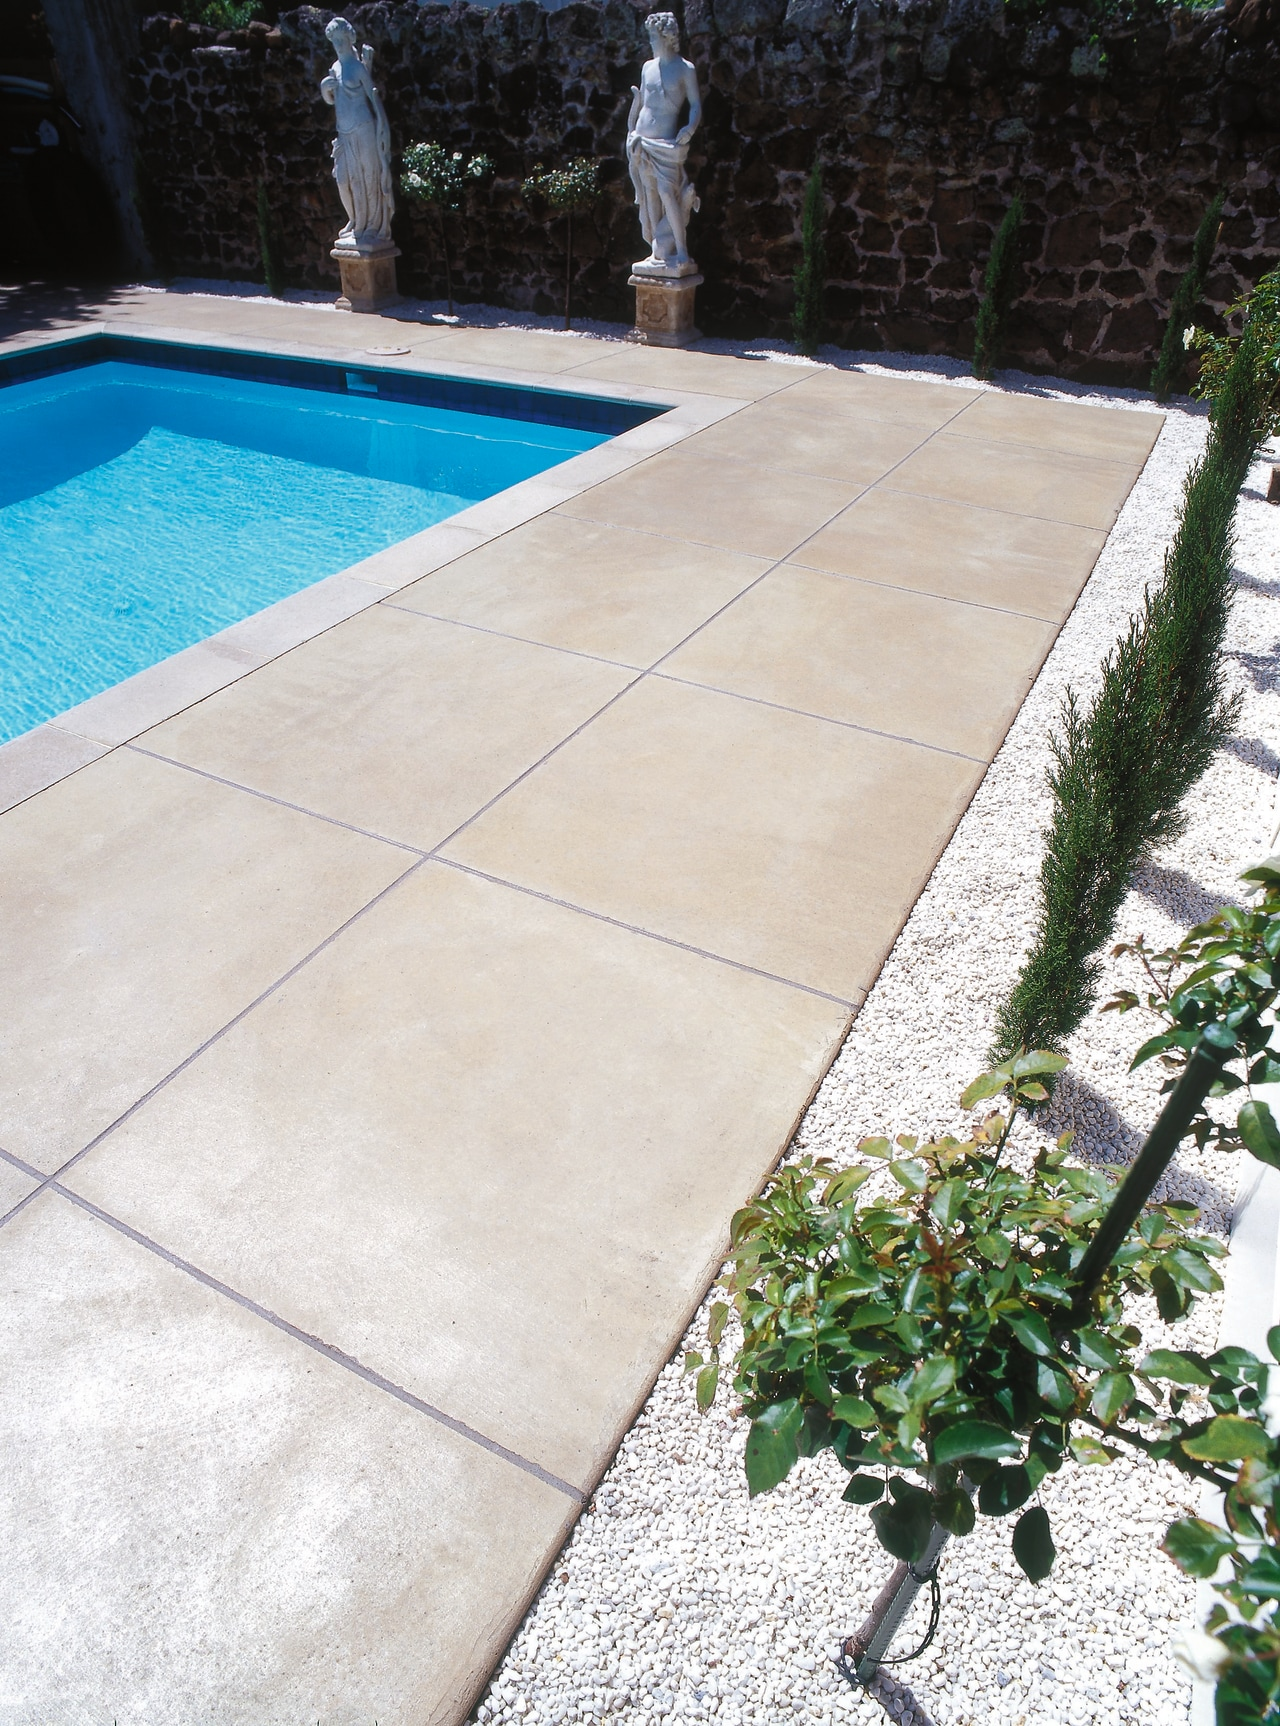 View of the homes exterior pool, garden and backyard, concrete, flagstone, floor, flooring, road surface, tile, walkway, wall, yard, white